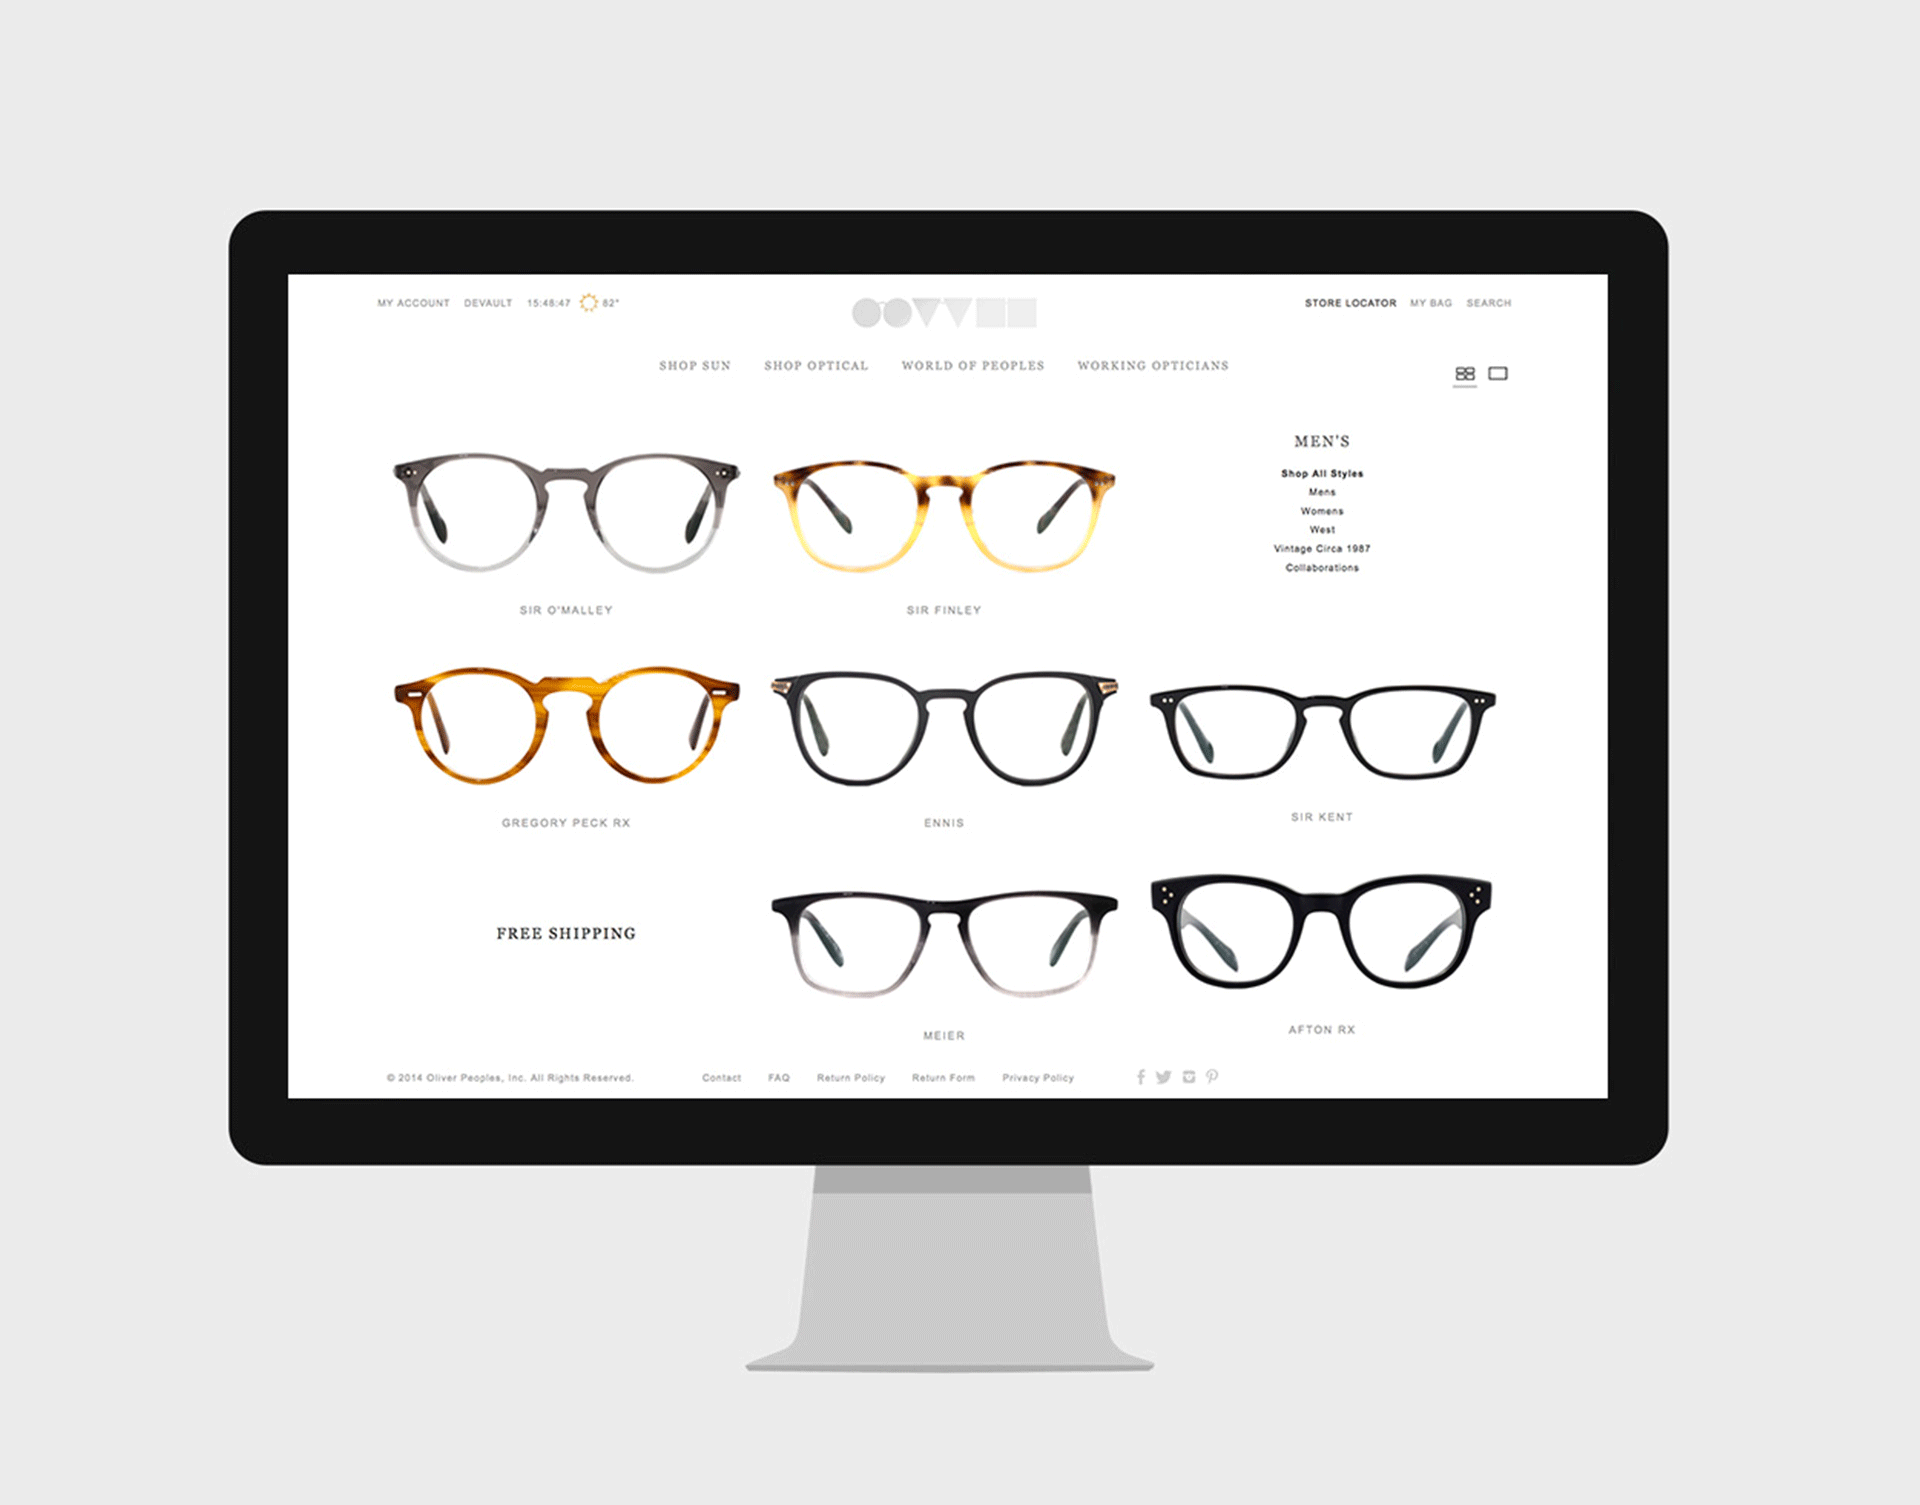 OLIVER PEOPLES  SITE REDESIGN